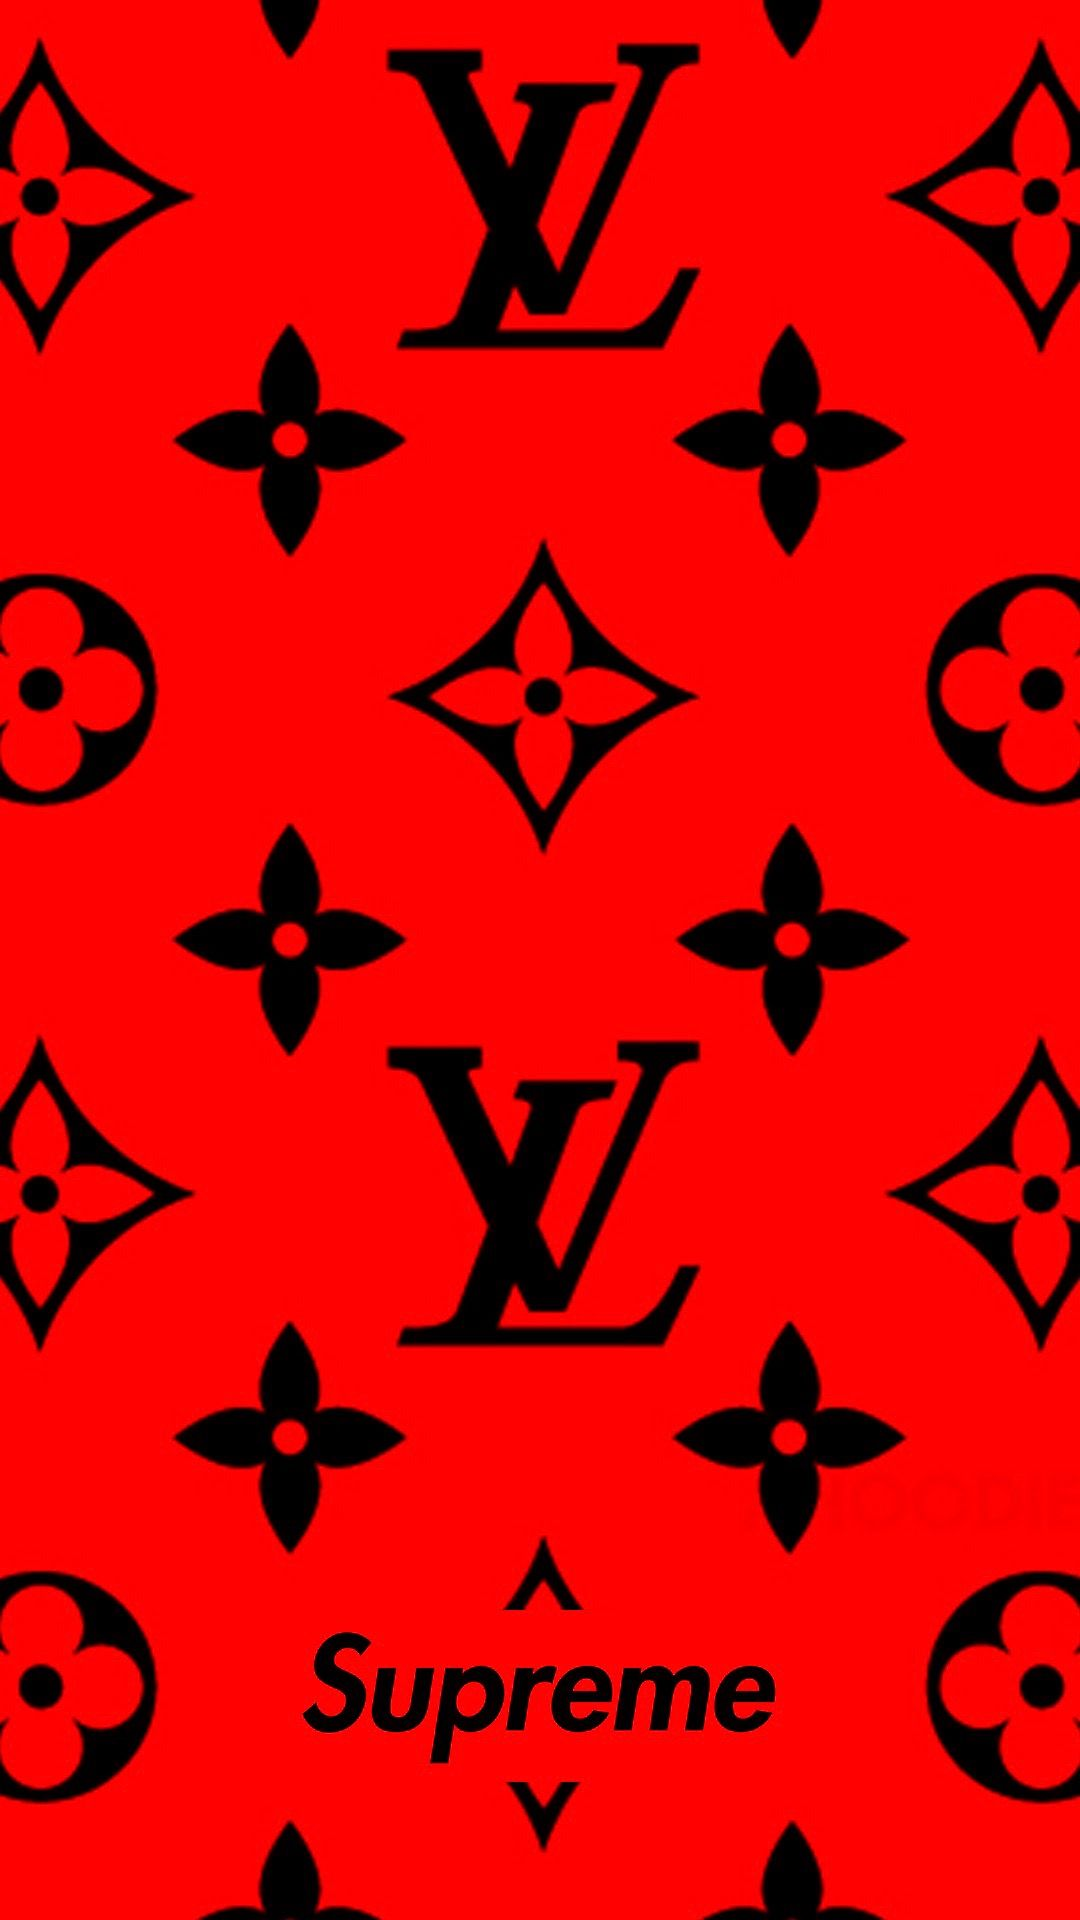 Free Download Lv Supreme Lv Supreme In 2019 Hypebeast